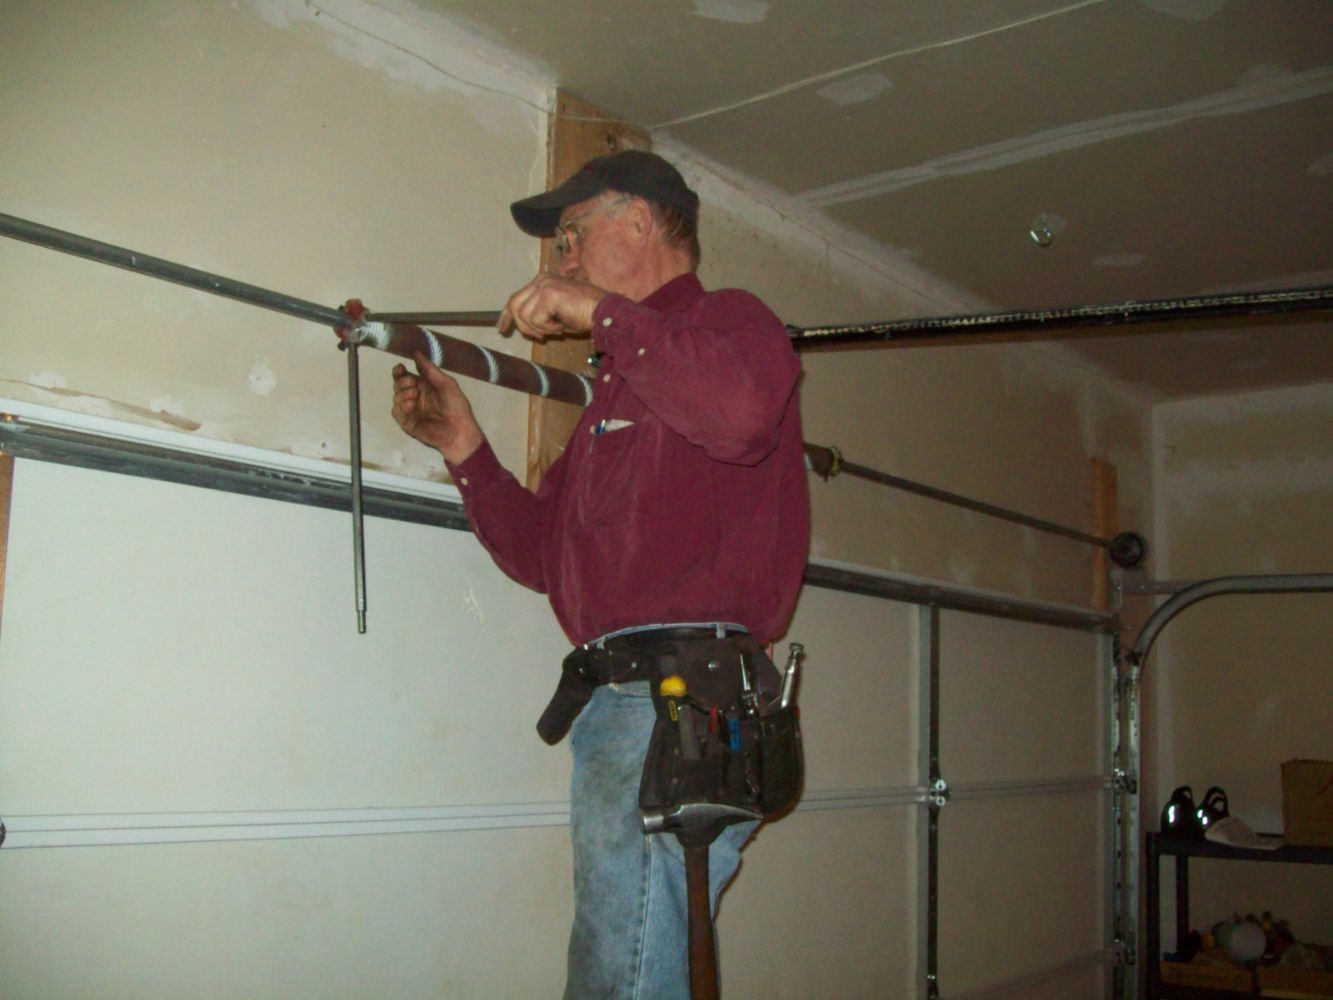 Reviews. Be The First To Review All Garage Door Repair Santa Ana